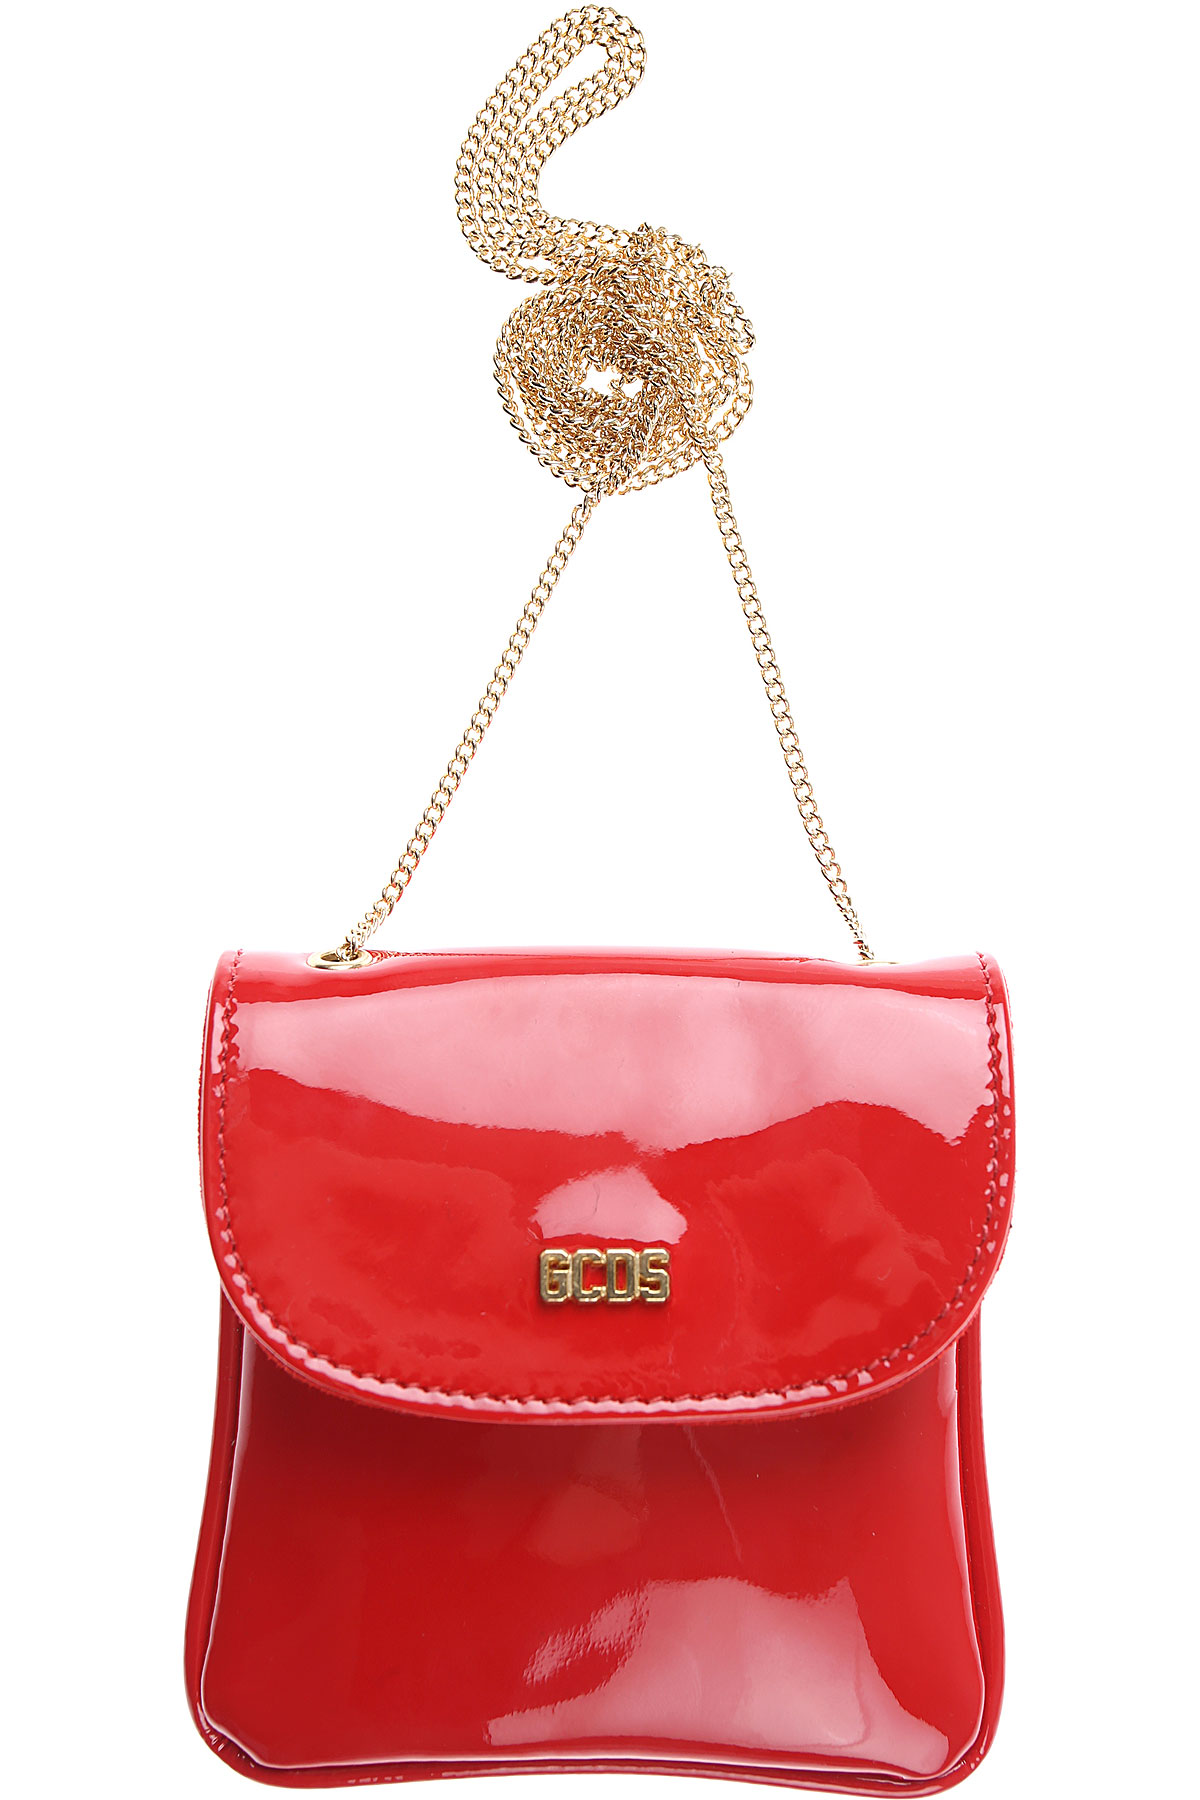 GCDS Card Holder for Women On Sale, Red, Patent Leather, 2019